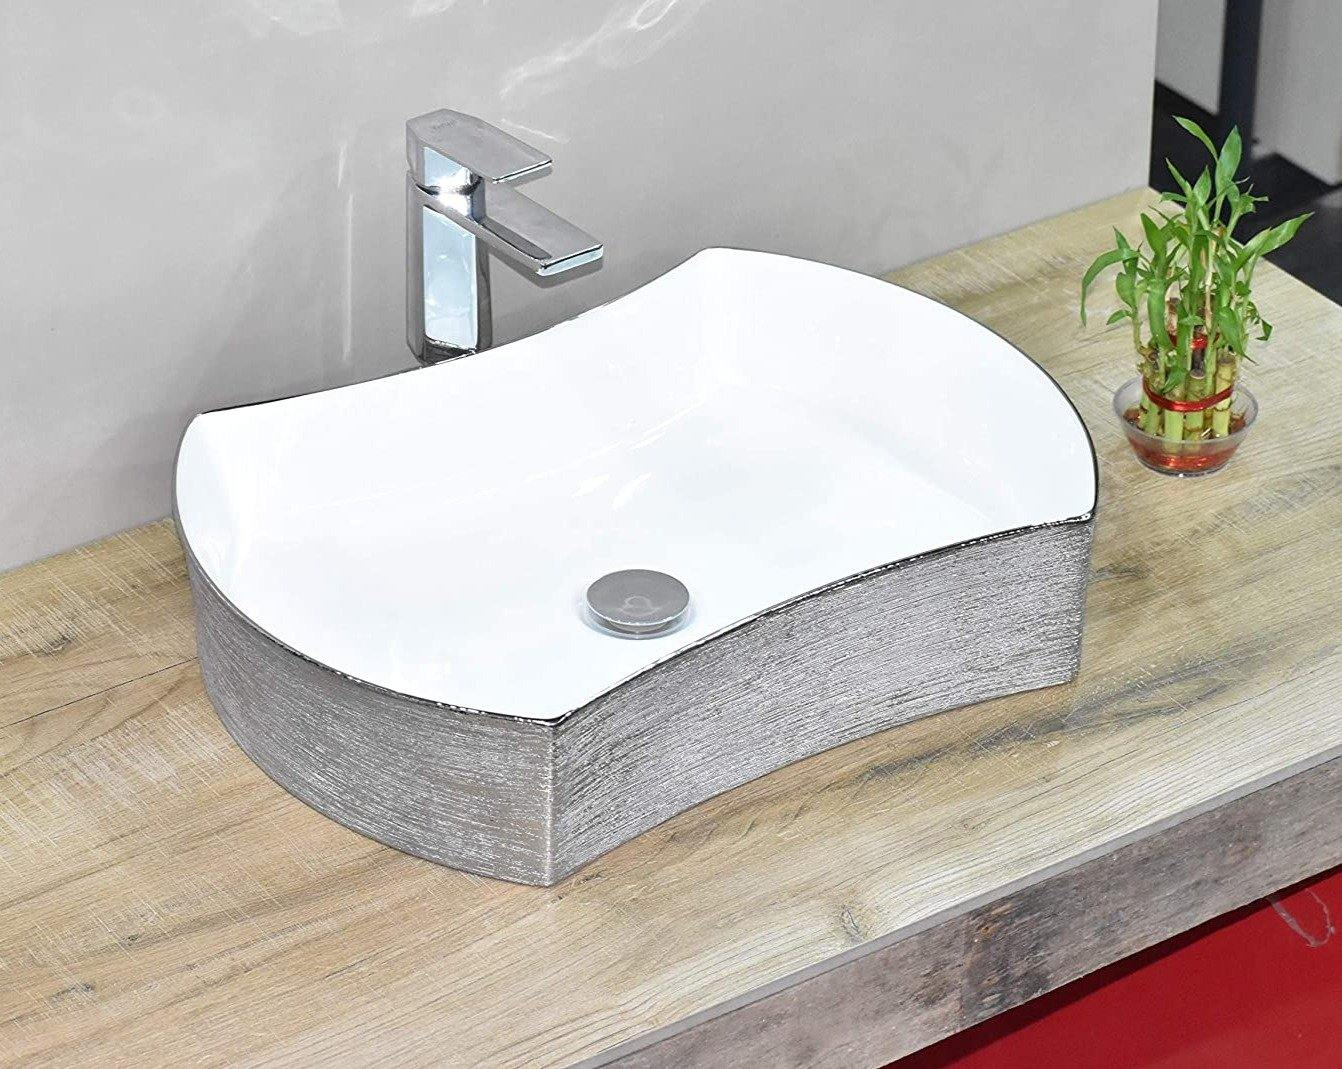 Ceramic Bathroom Sink Above Counter Vessel Sink Bowl Wash Basin Vanity Sink in Rectangle shape Countertop White Silver Color 540 X 380 X 125 MM - Home Store Cart